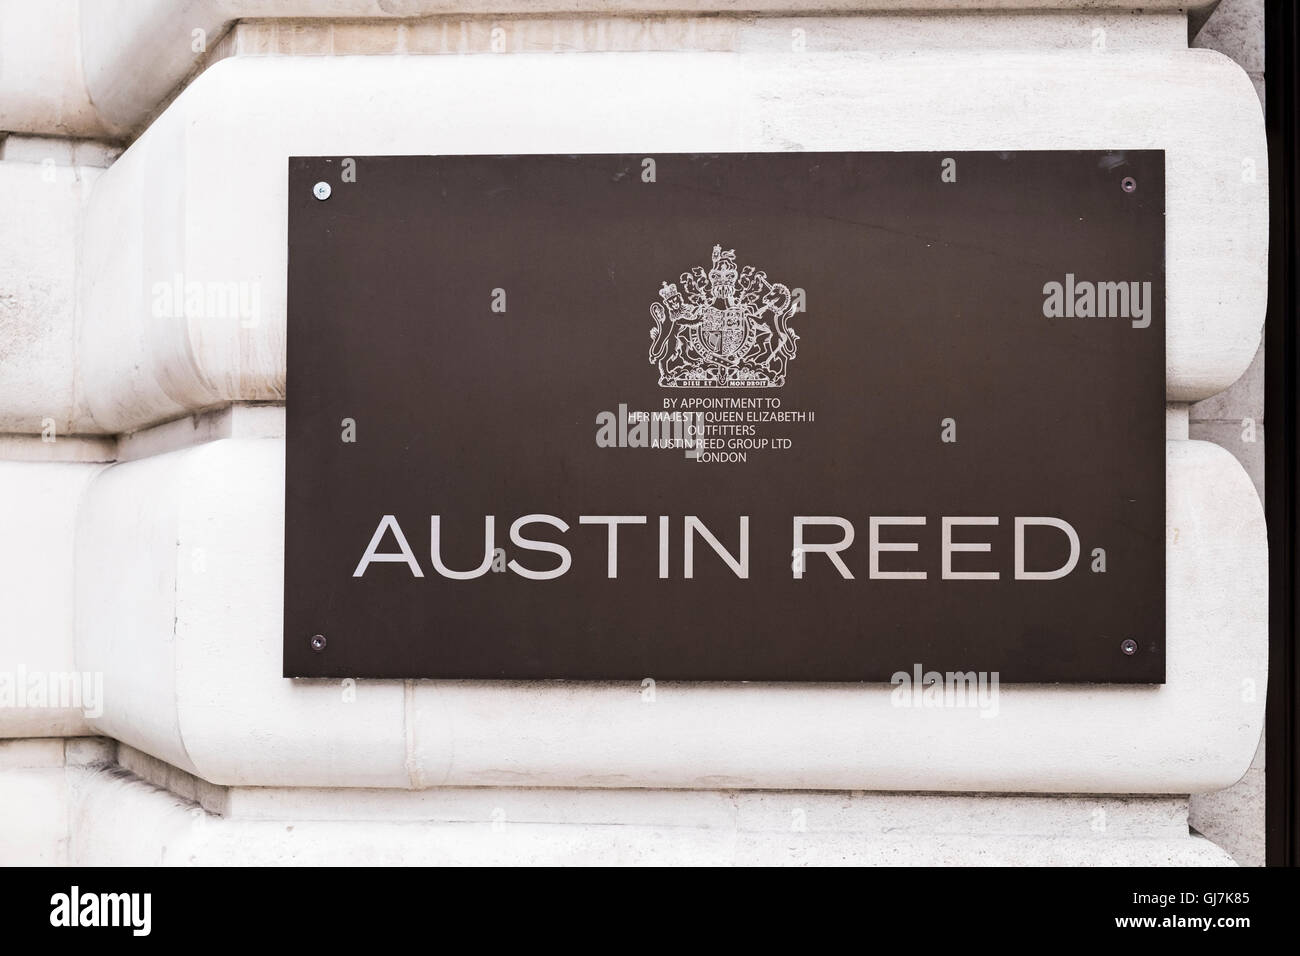 Austin Reed Regent S Street London England U K Stock Photo Alamy